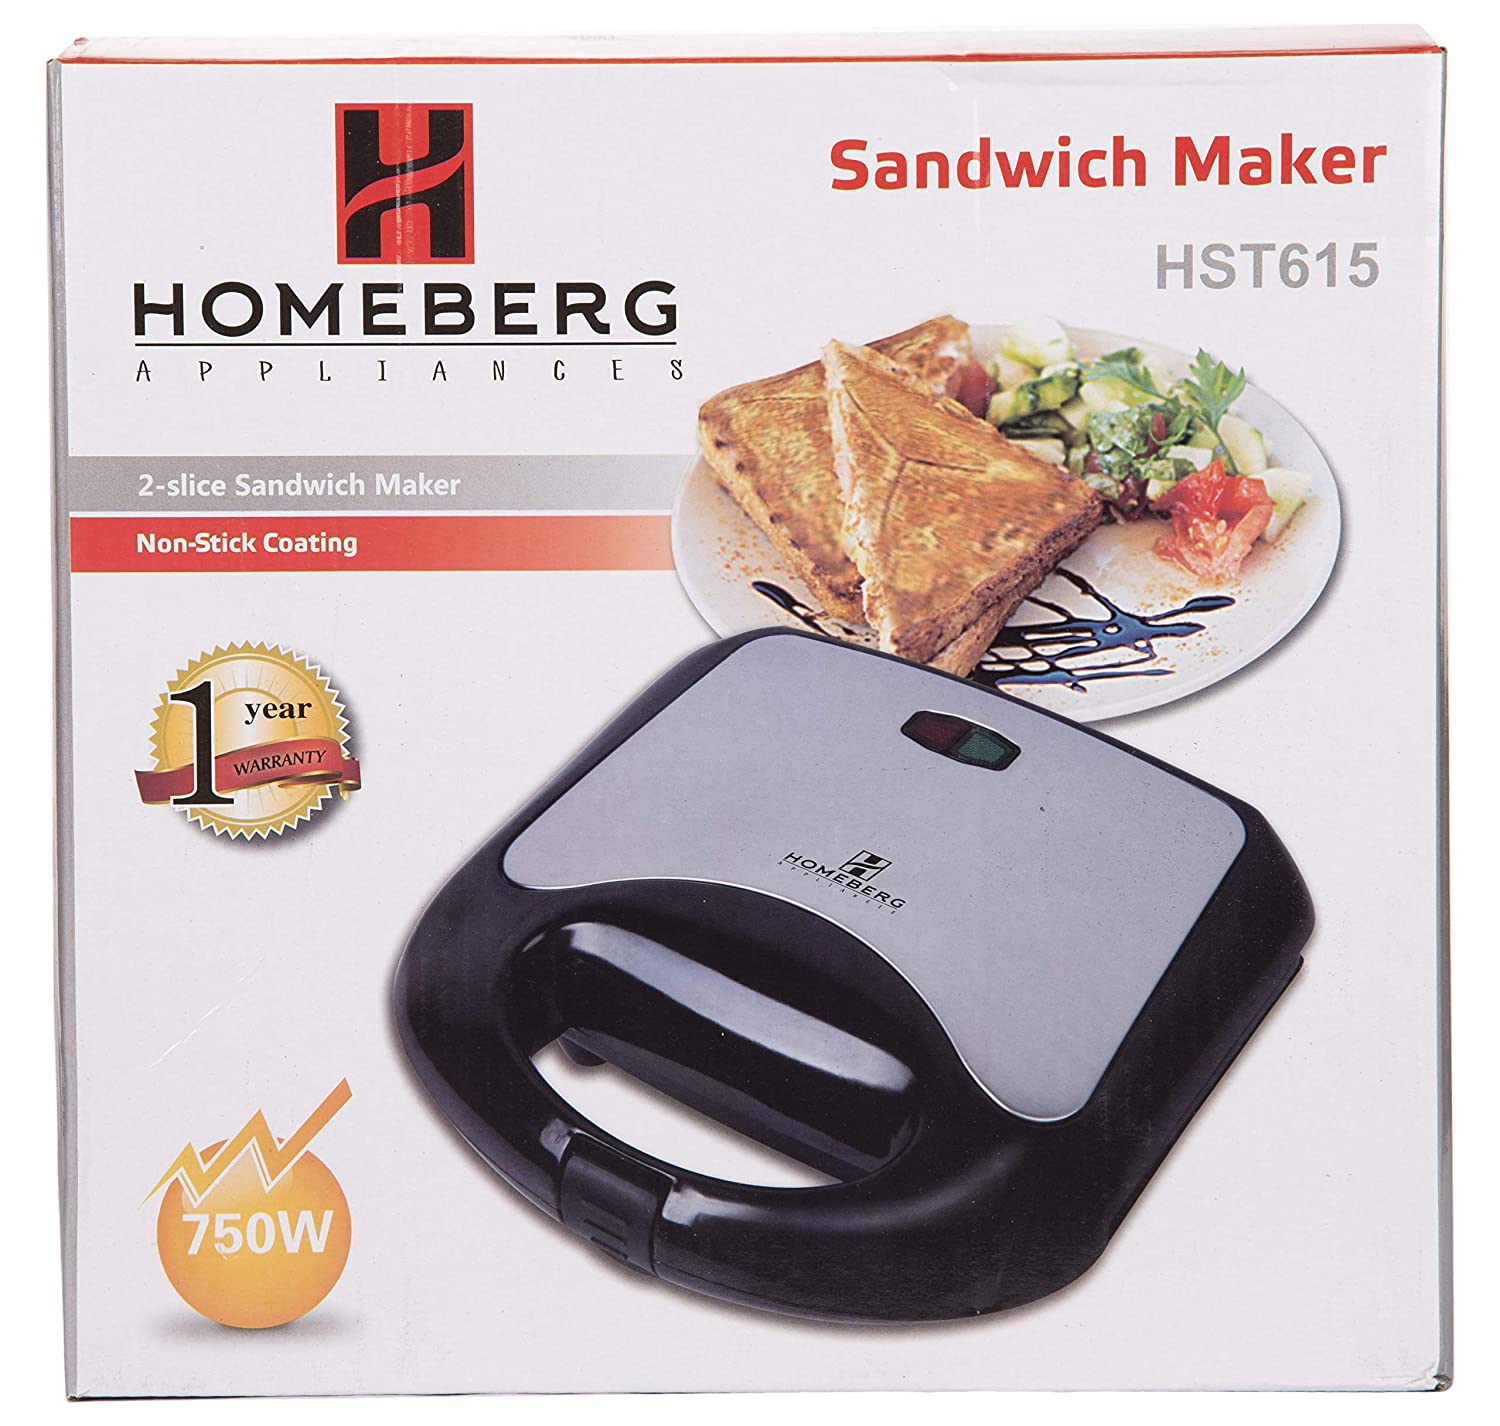 Buy Momai Enterprise Homeberg Sandwich Maker Hst615 Online At Low Prices In India Amazon In